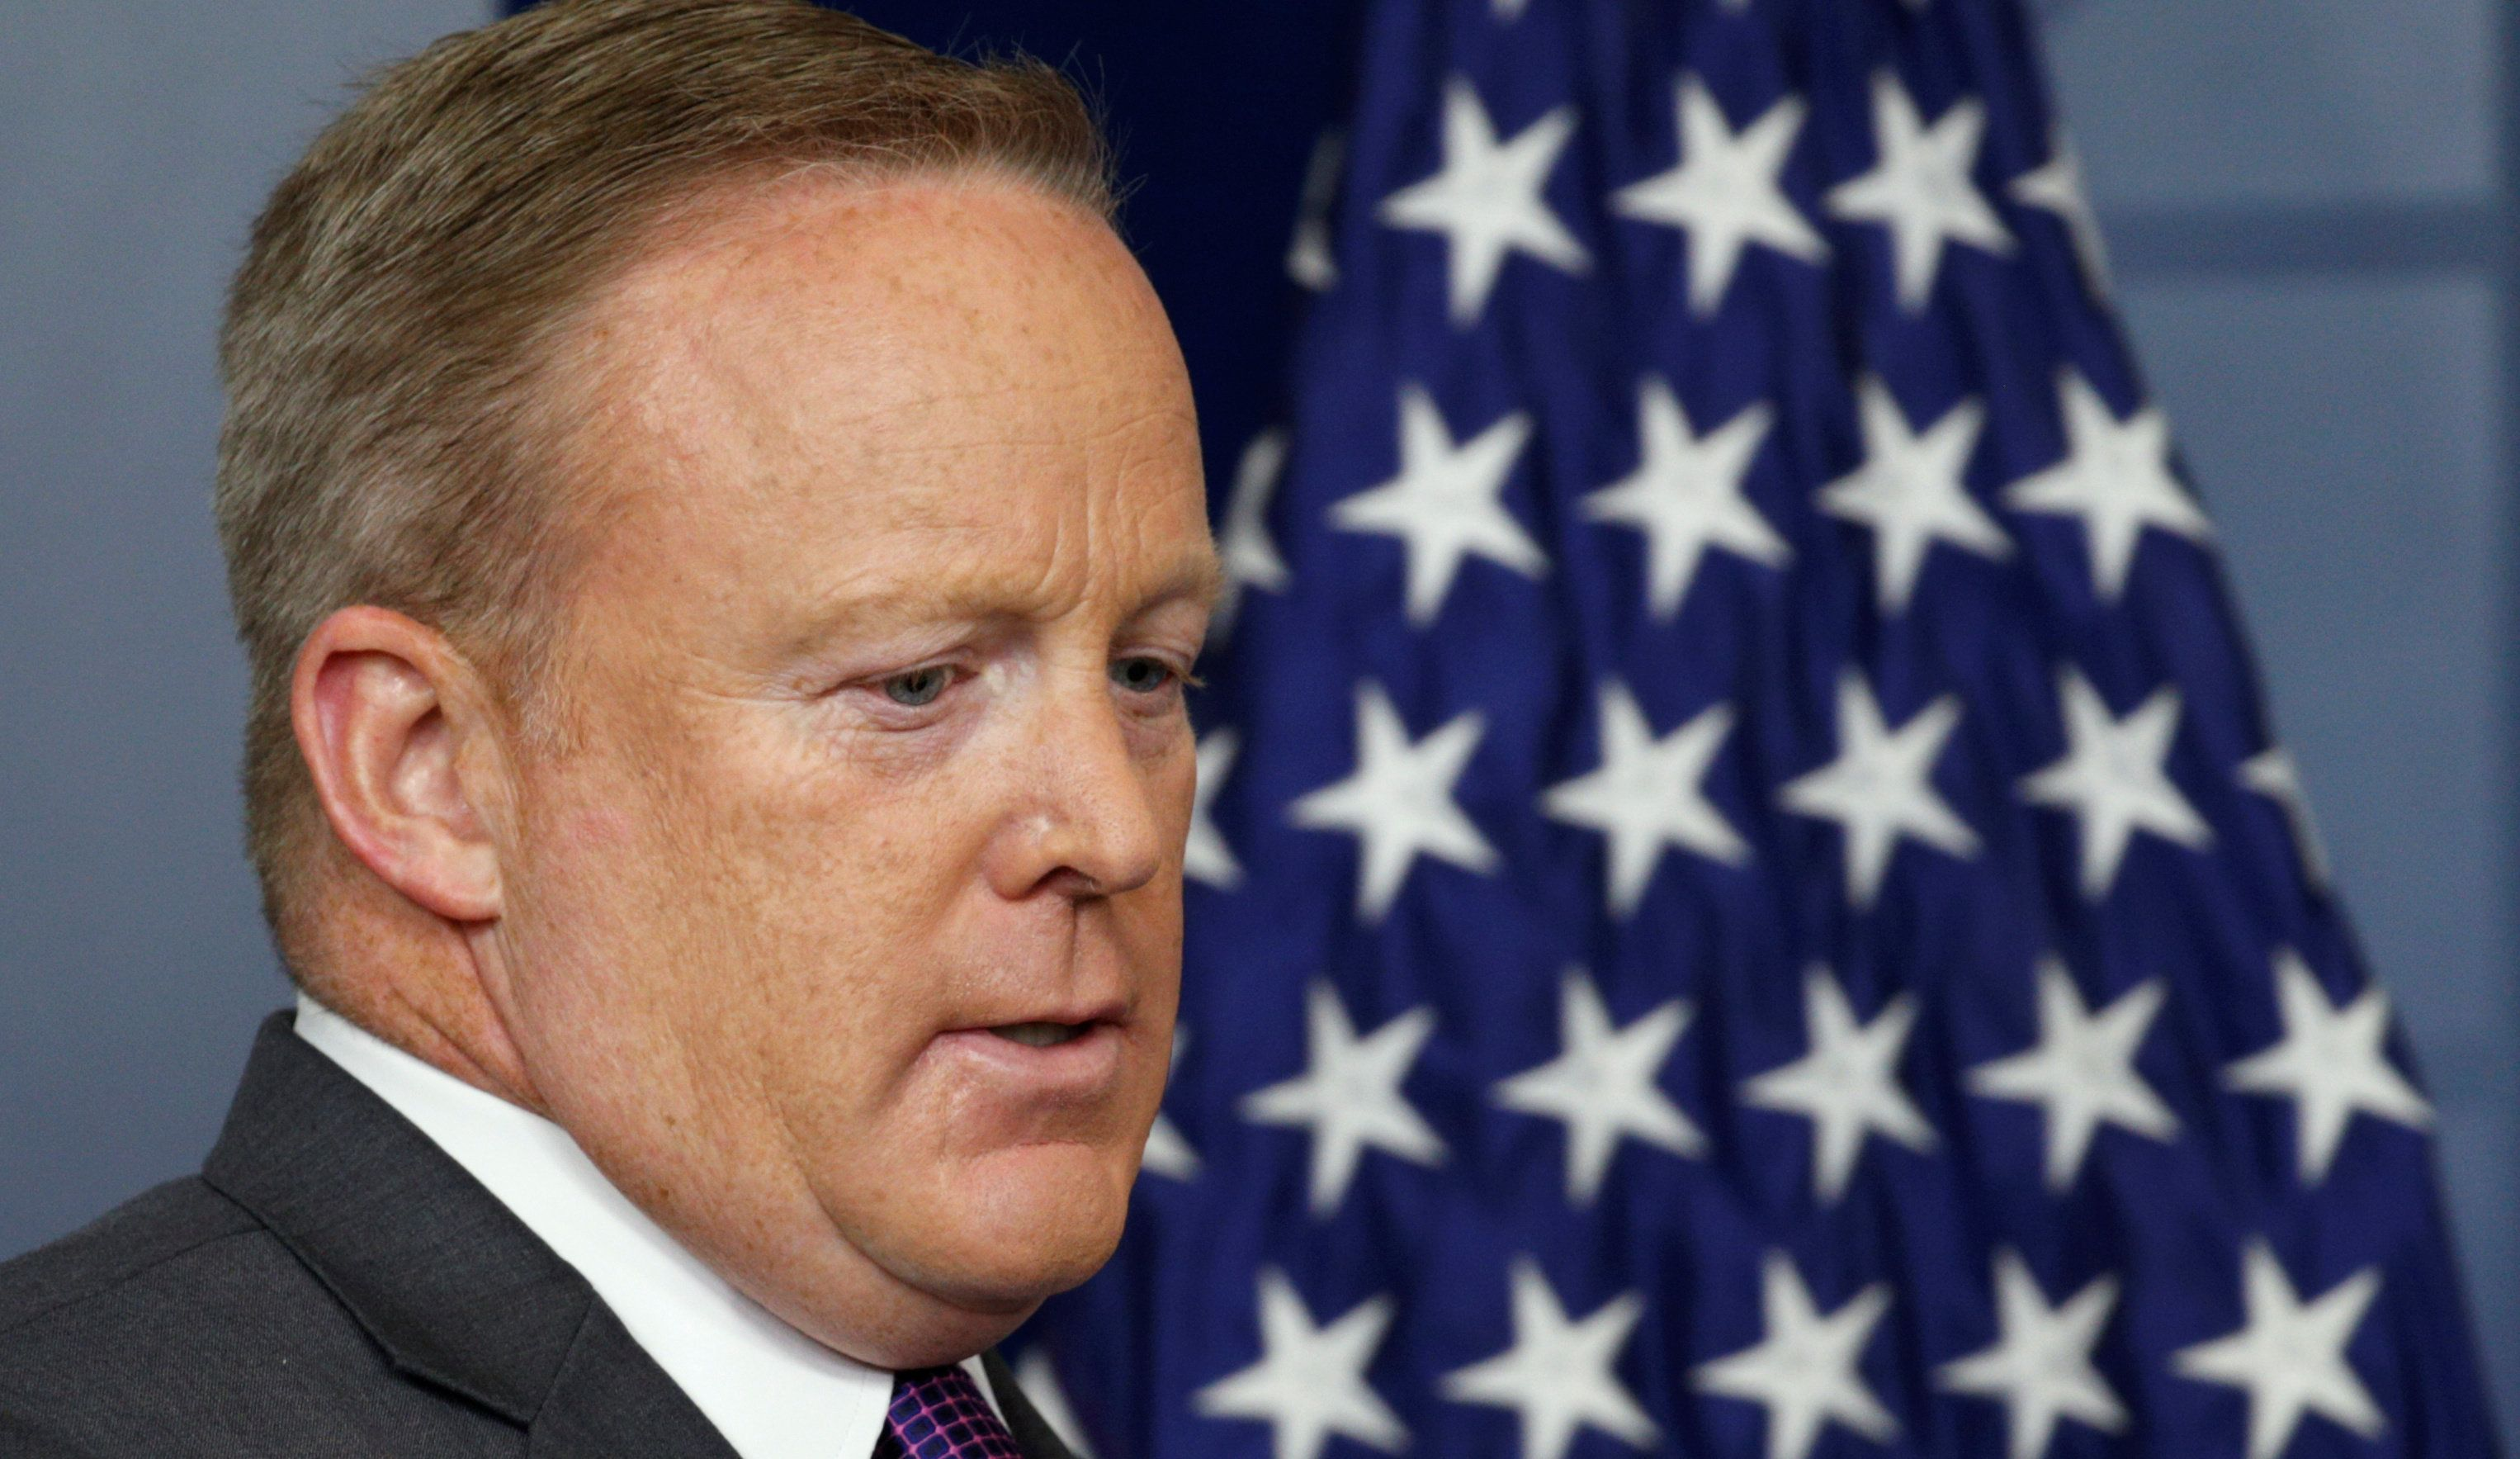 White House spokesman Sean Spicer arrives for a press briefing at the White House in Washington, U.S., July 17, 2017.  REUTERS/Kevin Lamarque